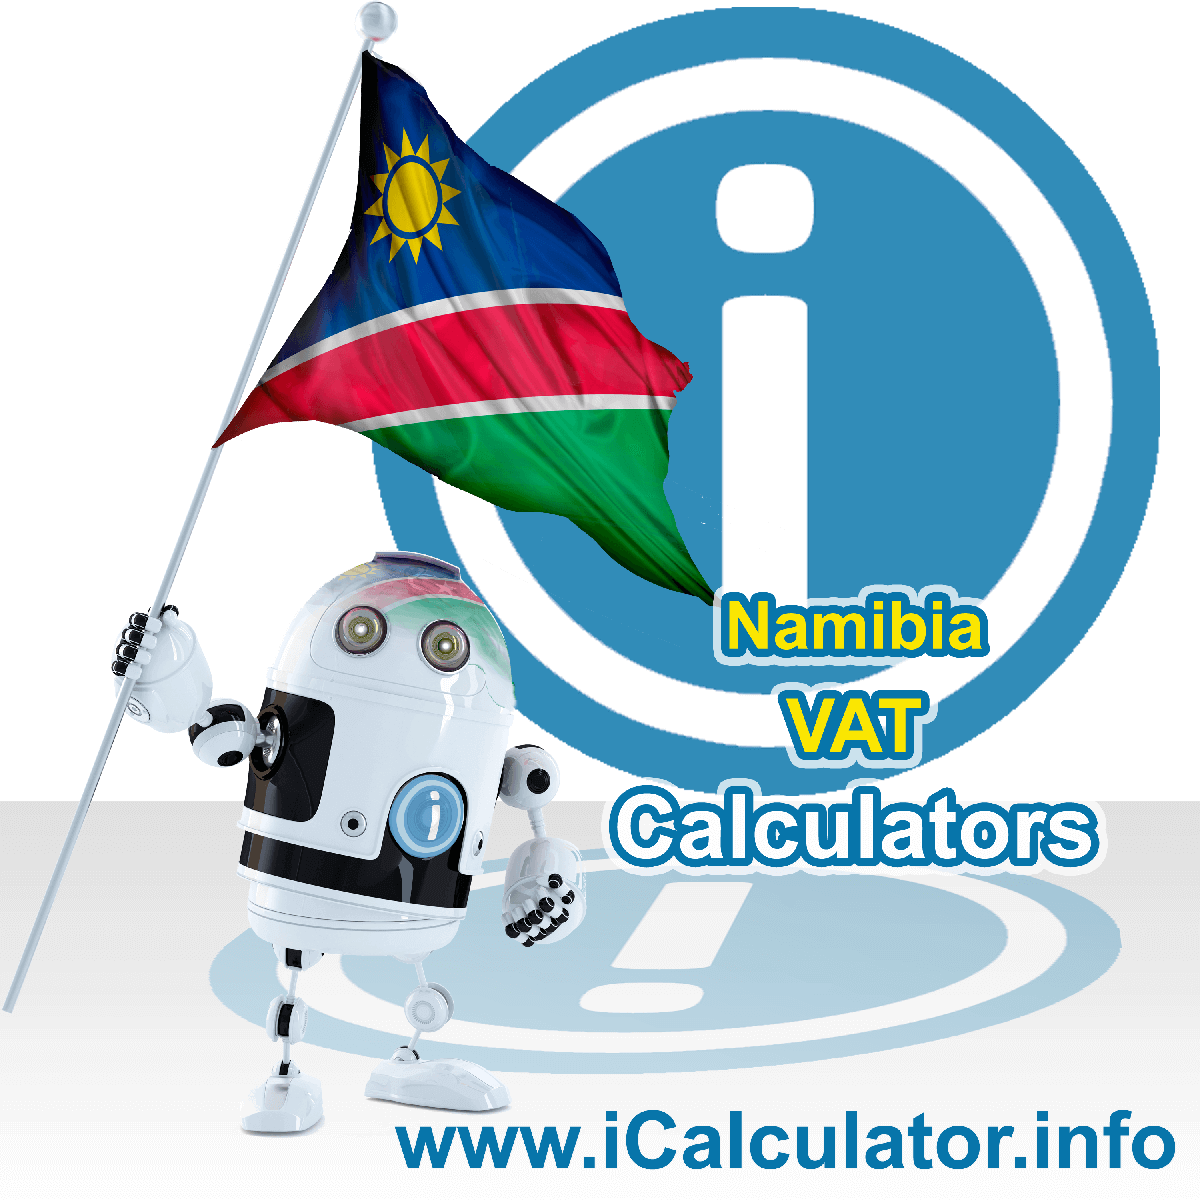 Namibia VAT Calculator. This image shows the Namibia flag and information relating to the VAT formula used for calculating Value Added Tax in Namibia using the Namibia VAT Calculator in 2021